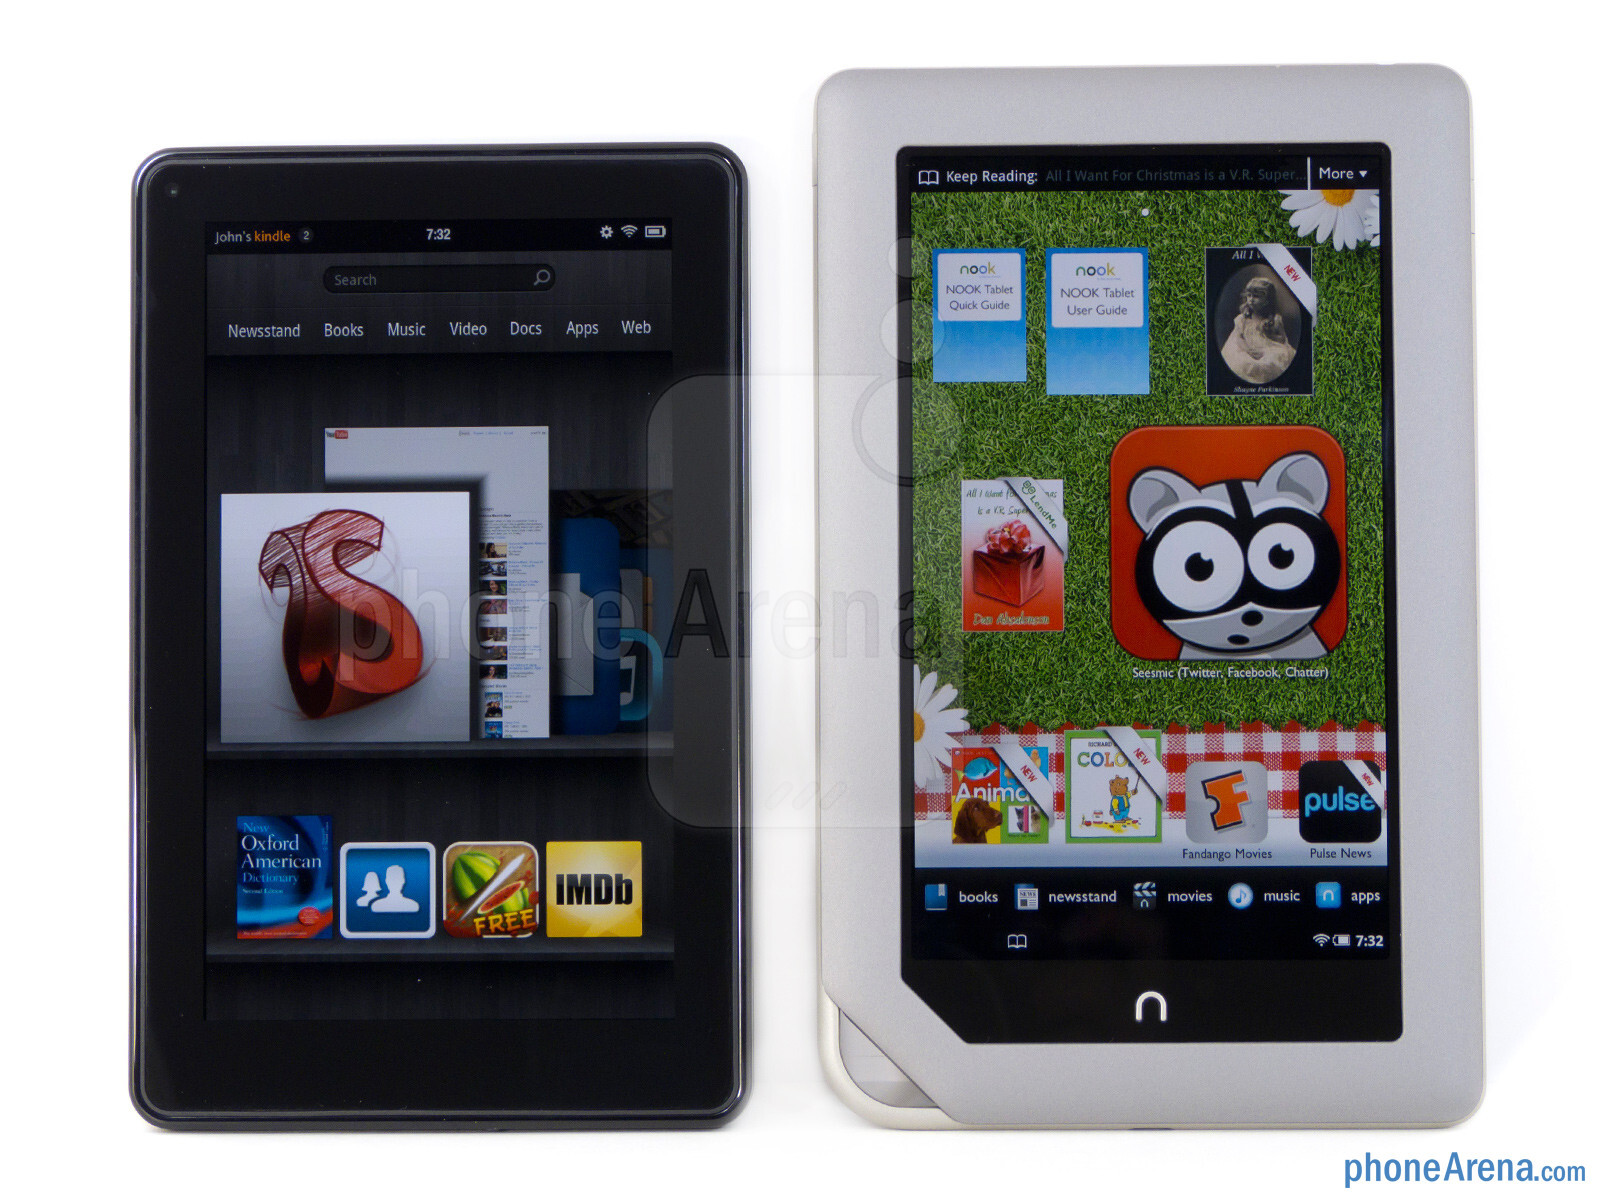 Amazon Kindle Fire Vs Nook Tablet Performance And